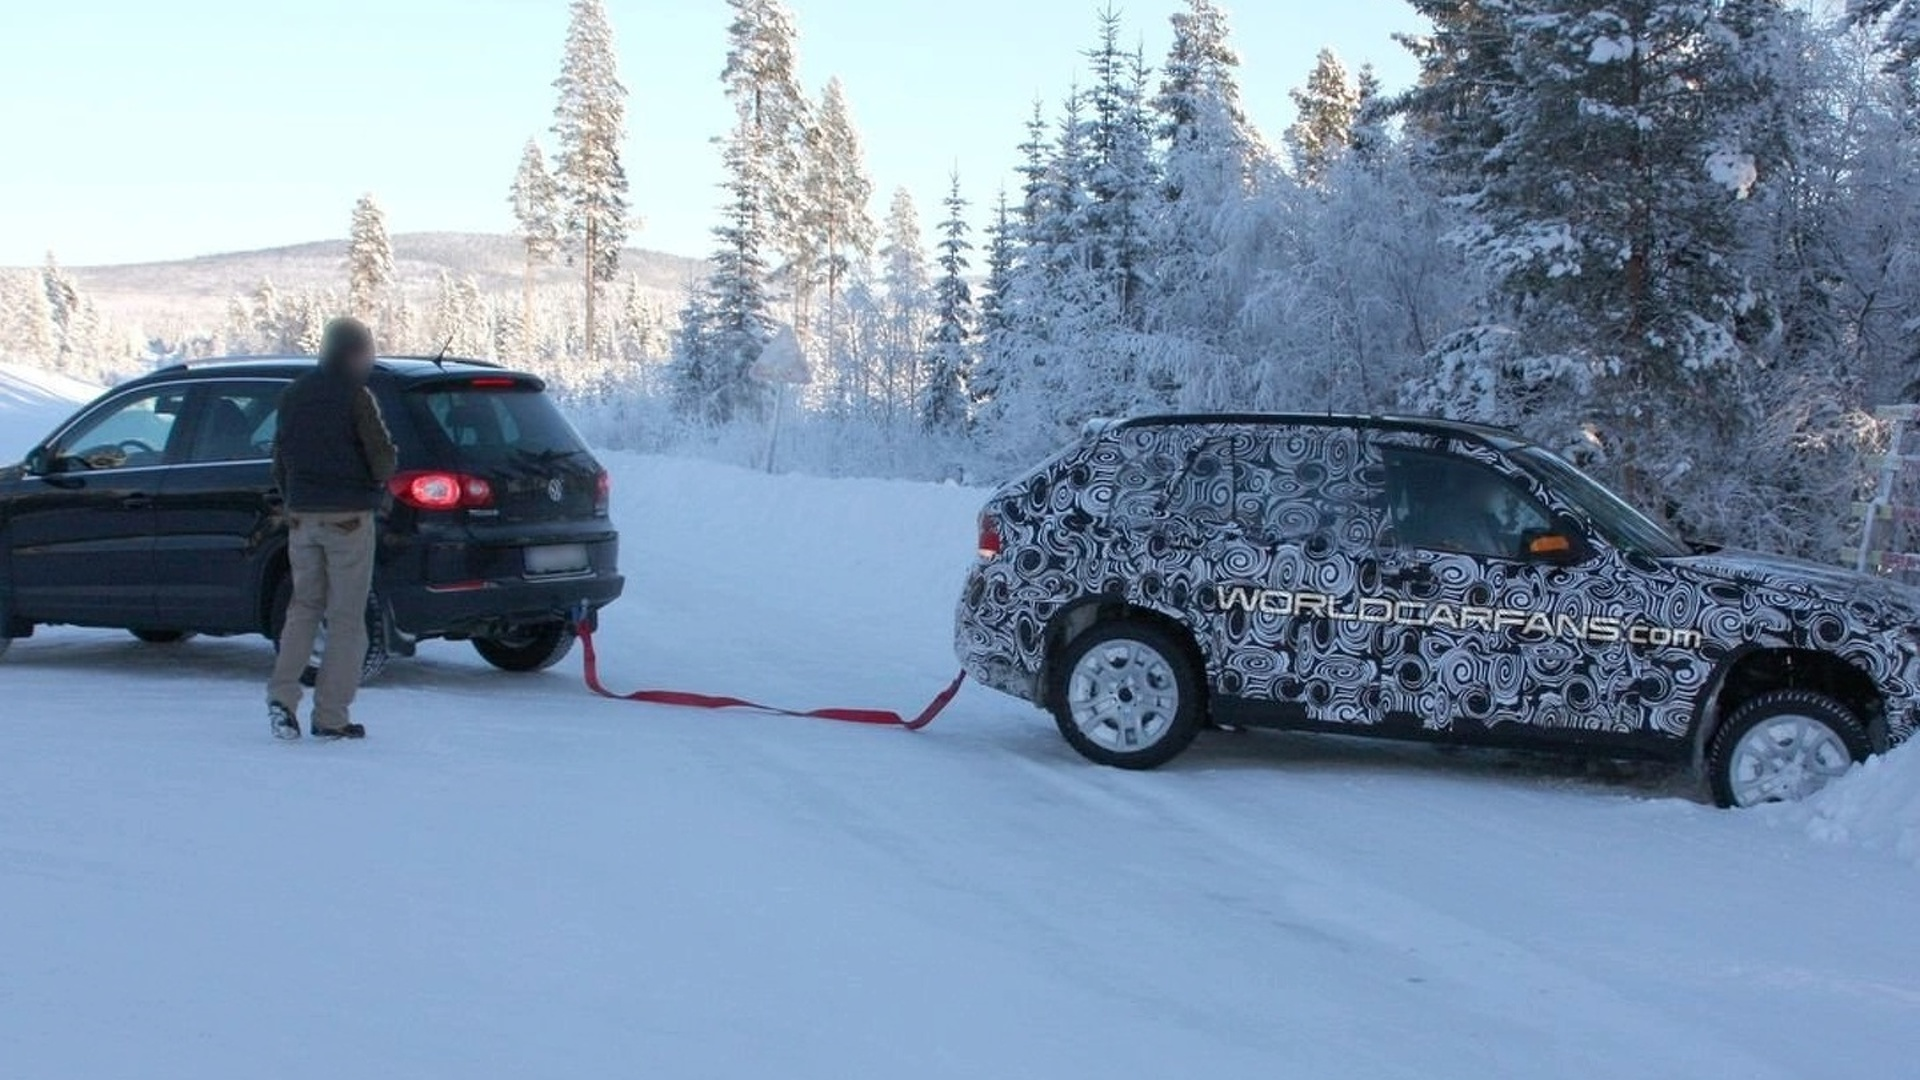 BMW X1 Gets Stuck in Snow Bank